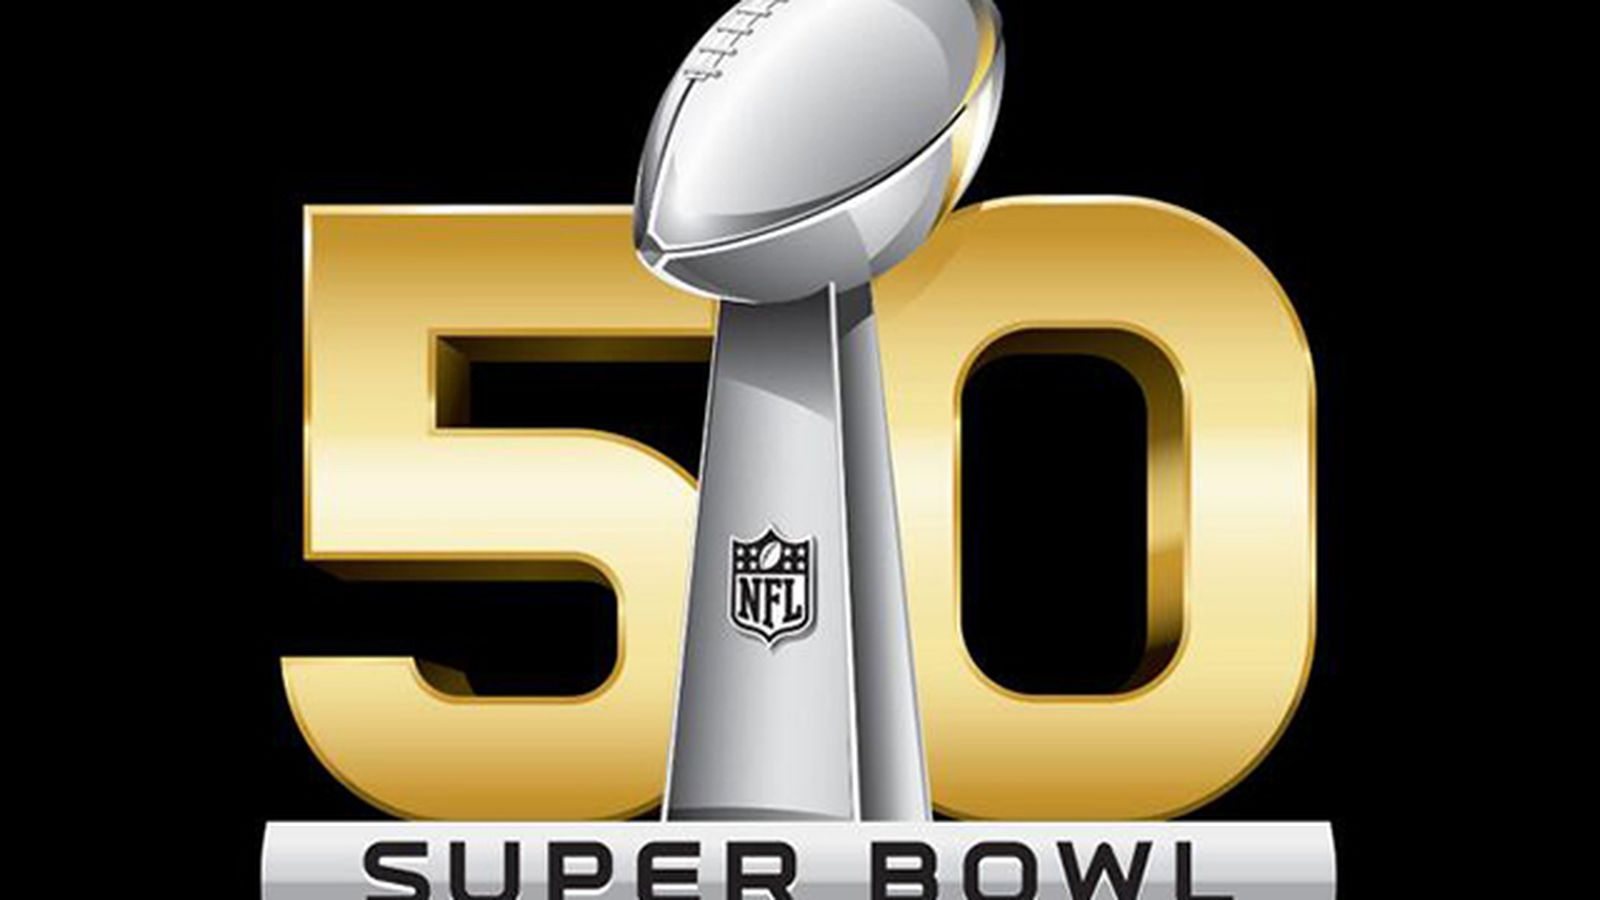 Watch the Super Bowl Southeast Texas